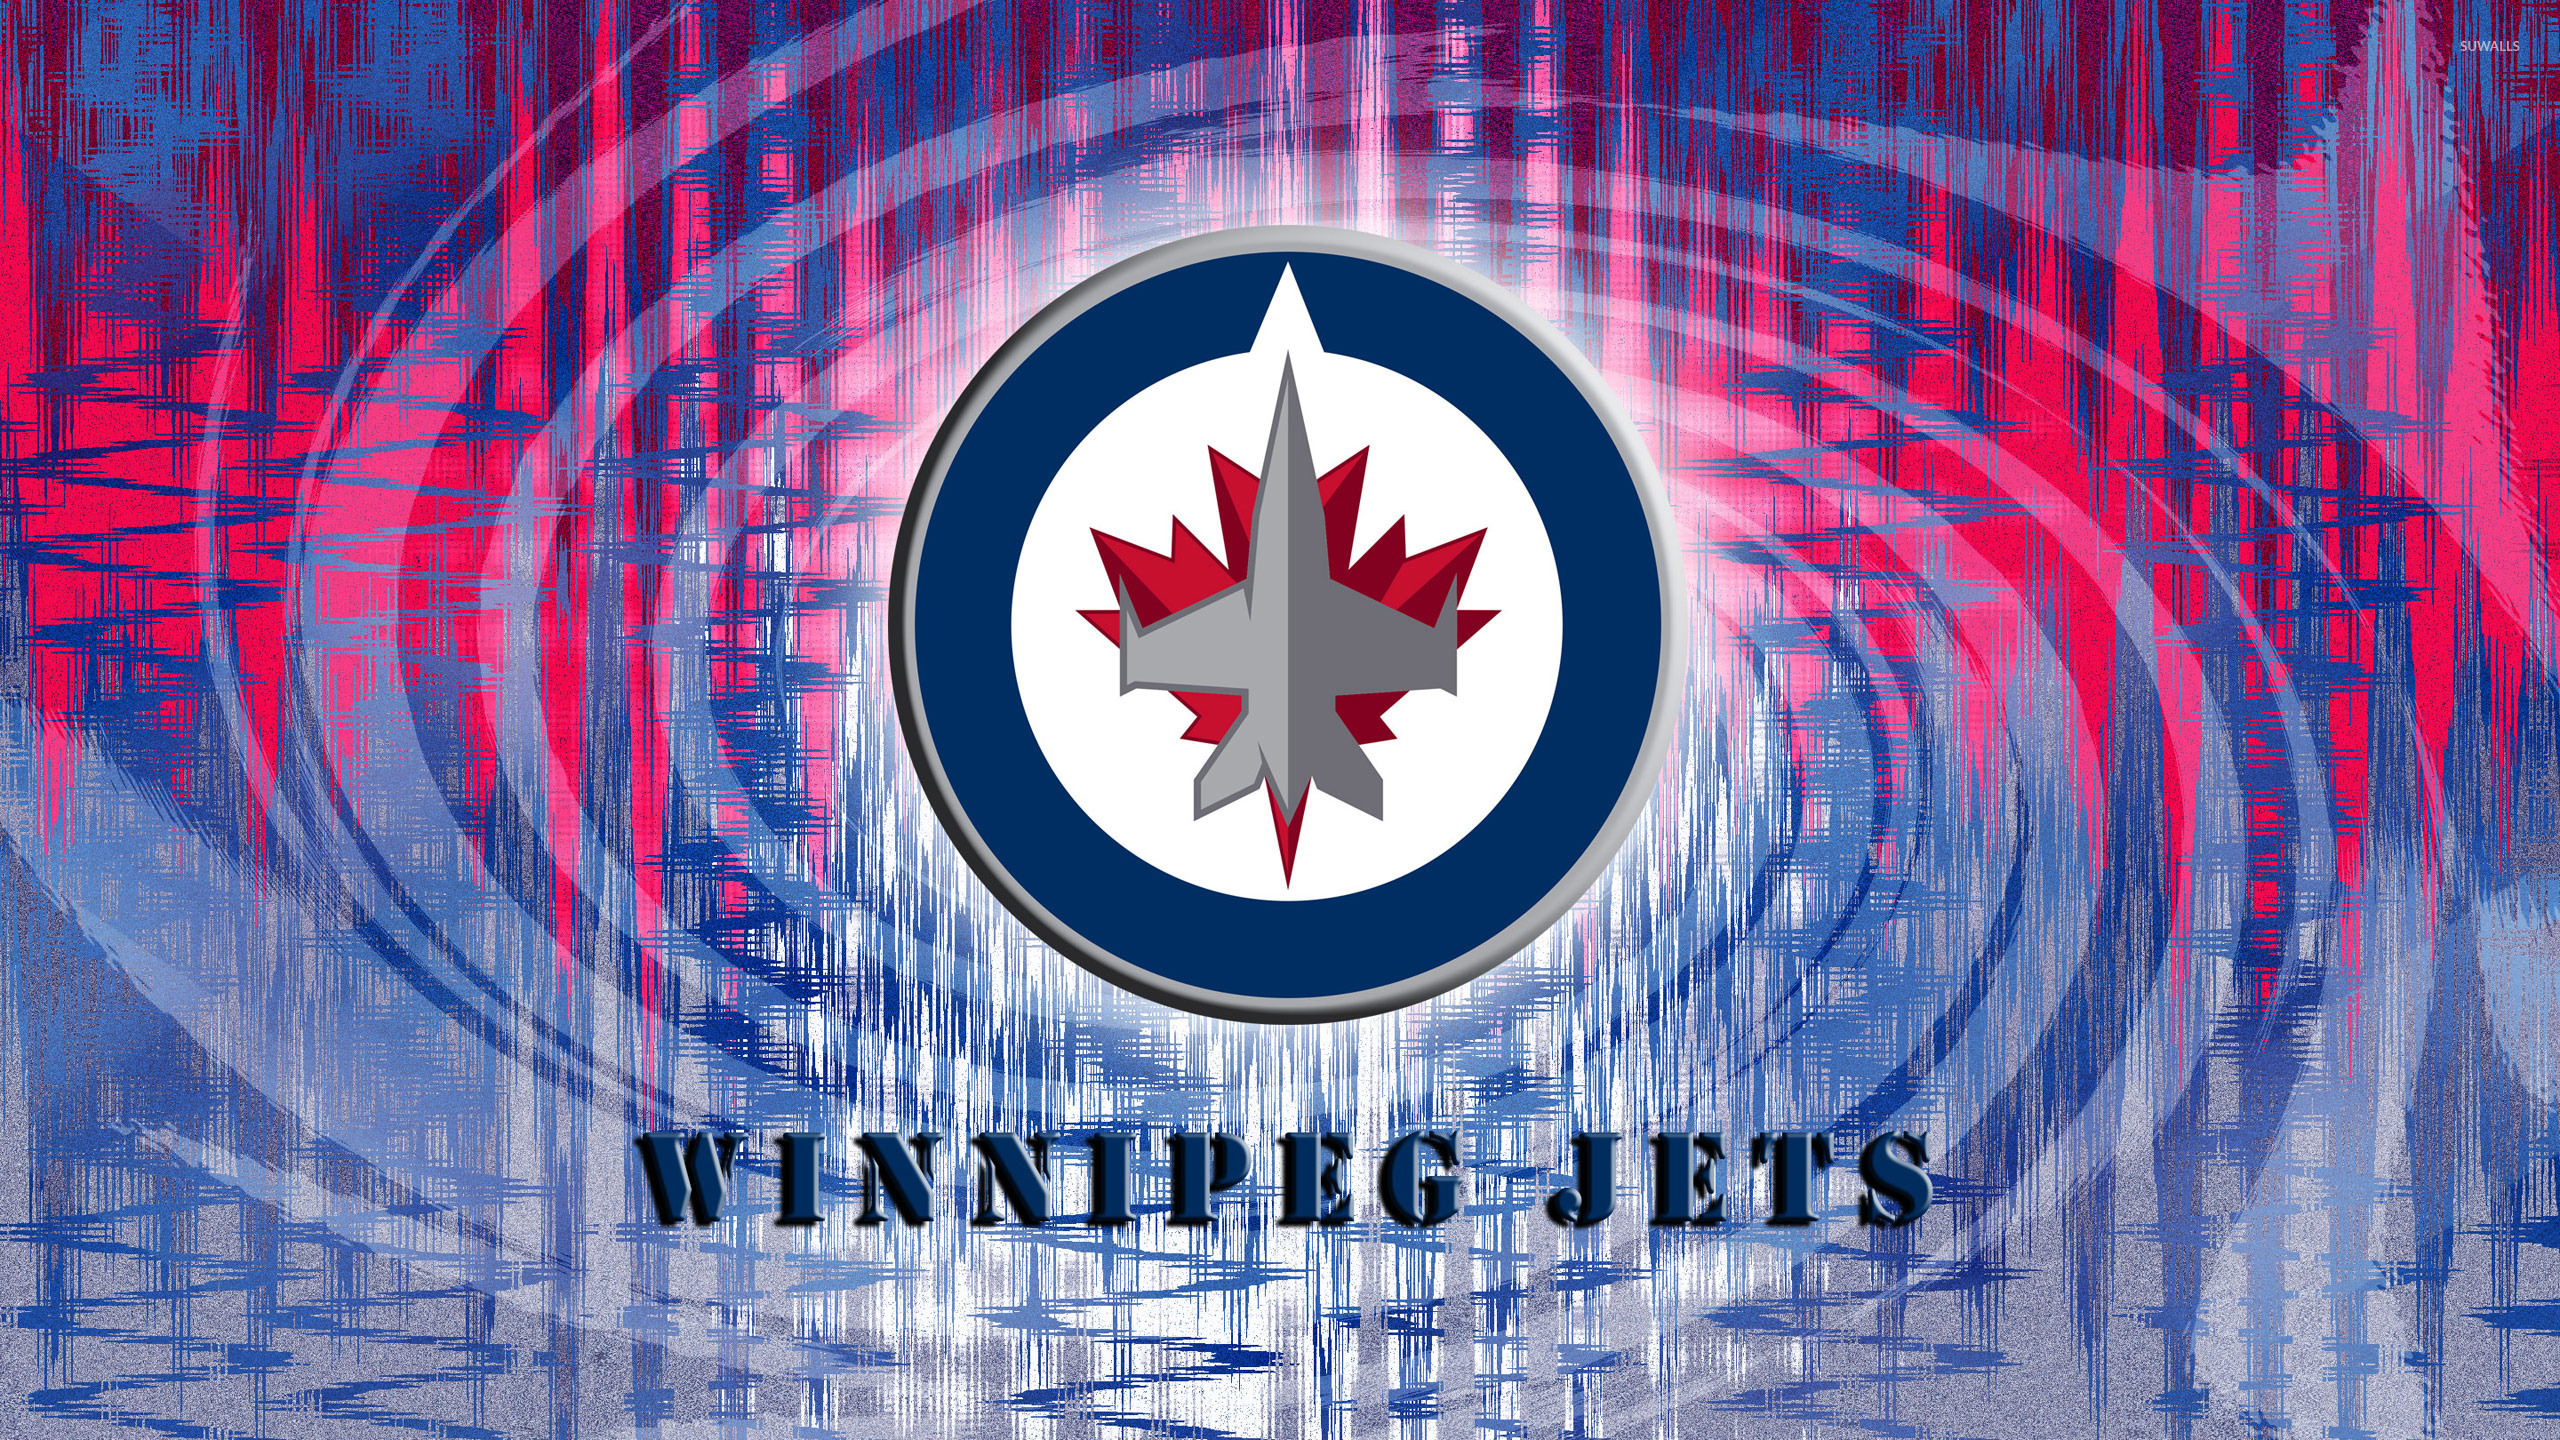 Winnipeg Jets Wallpaper 7   2560 X 1440 stmednet 2560x1440